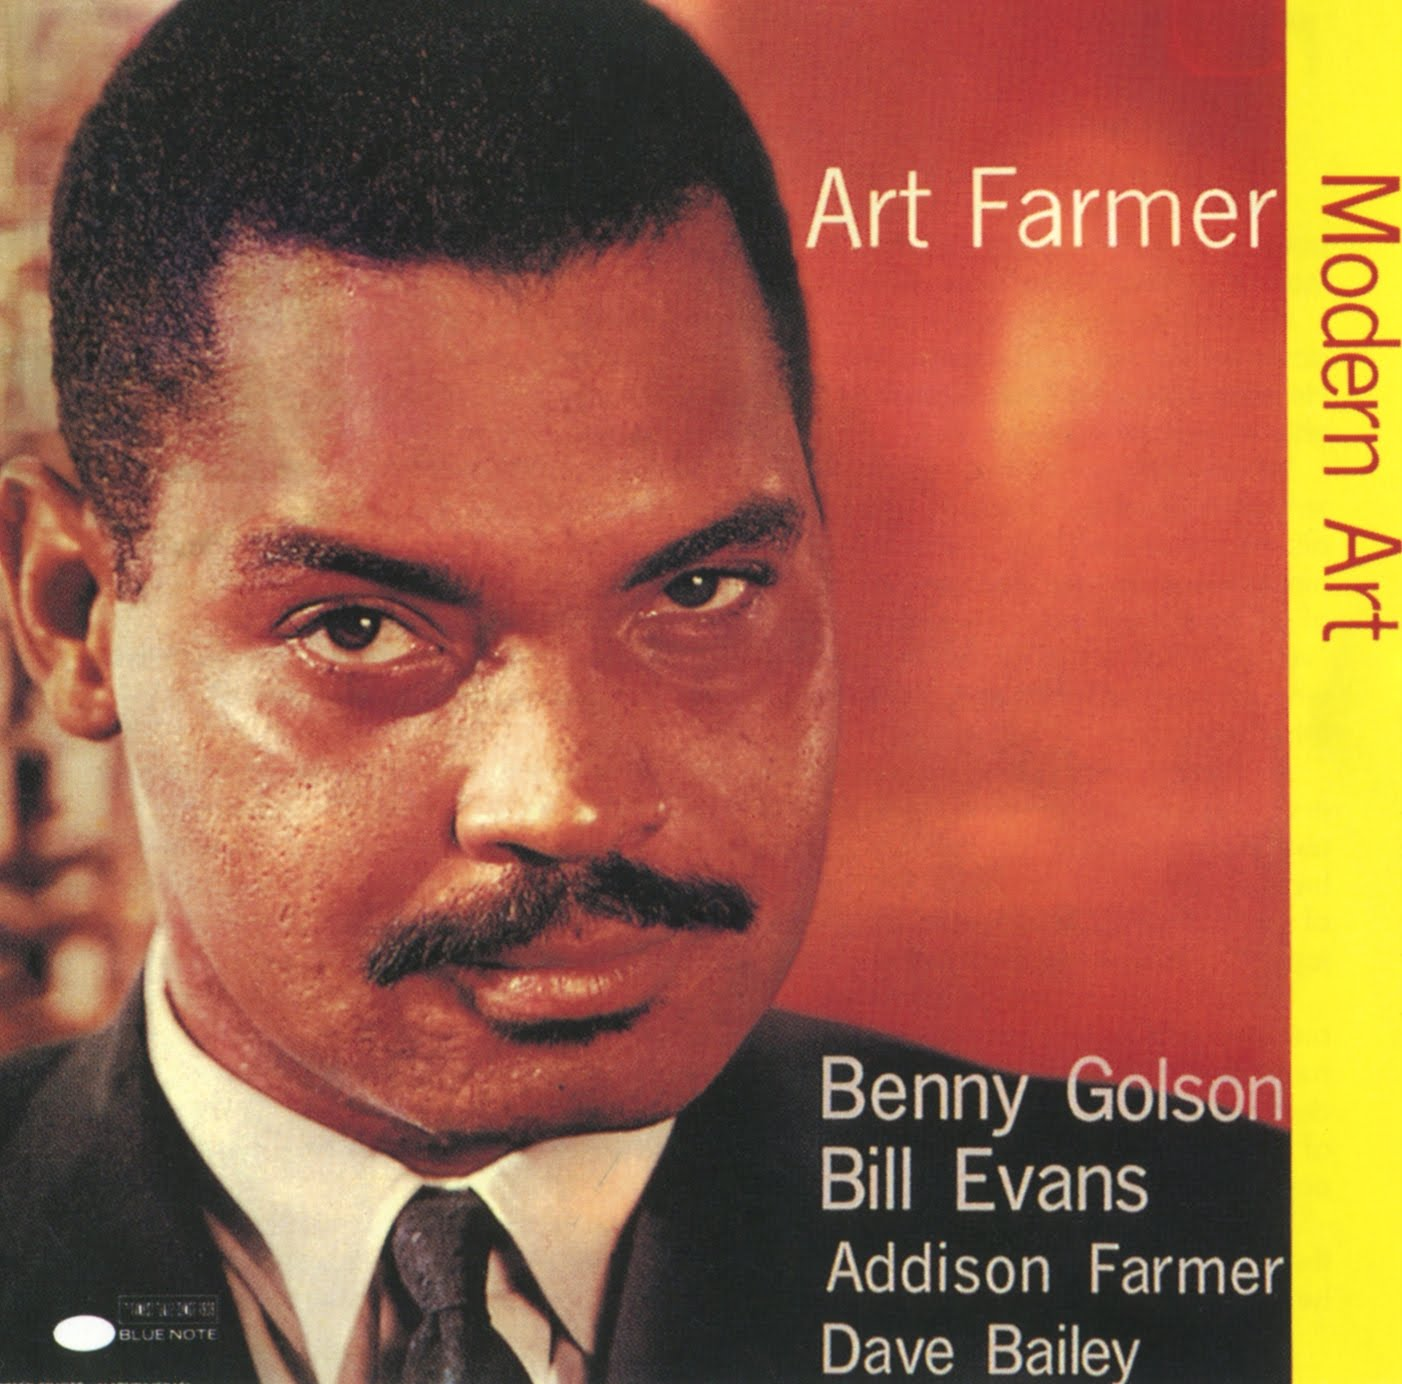 art farmer - modern art (album art)